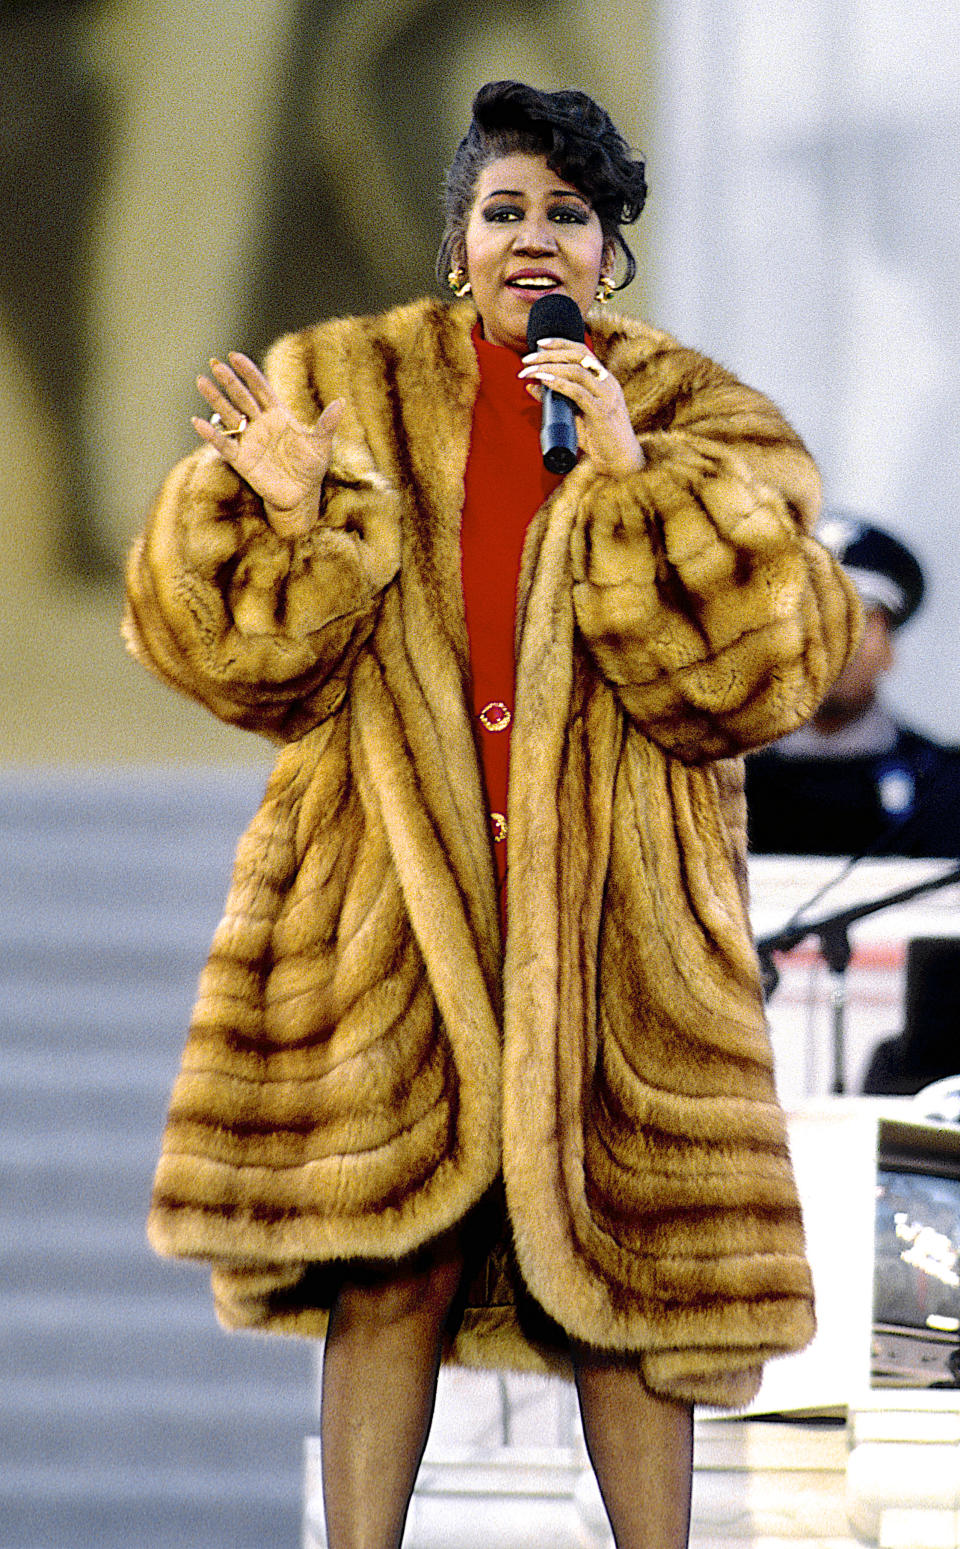 <p>Aretha Franklin wears an oversized brown fur coat over a red mod-style mini dress with gold emerald earrings while preforming at the Lincoln Memorial for President William Jefferson Clinton's inaugural gala in Washington, D.C. (Photo by Mark Reinstein/Corbis via Getty Images) </p>